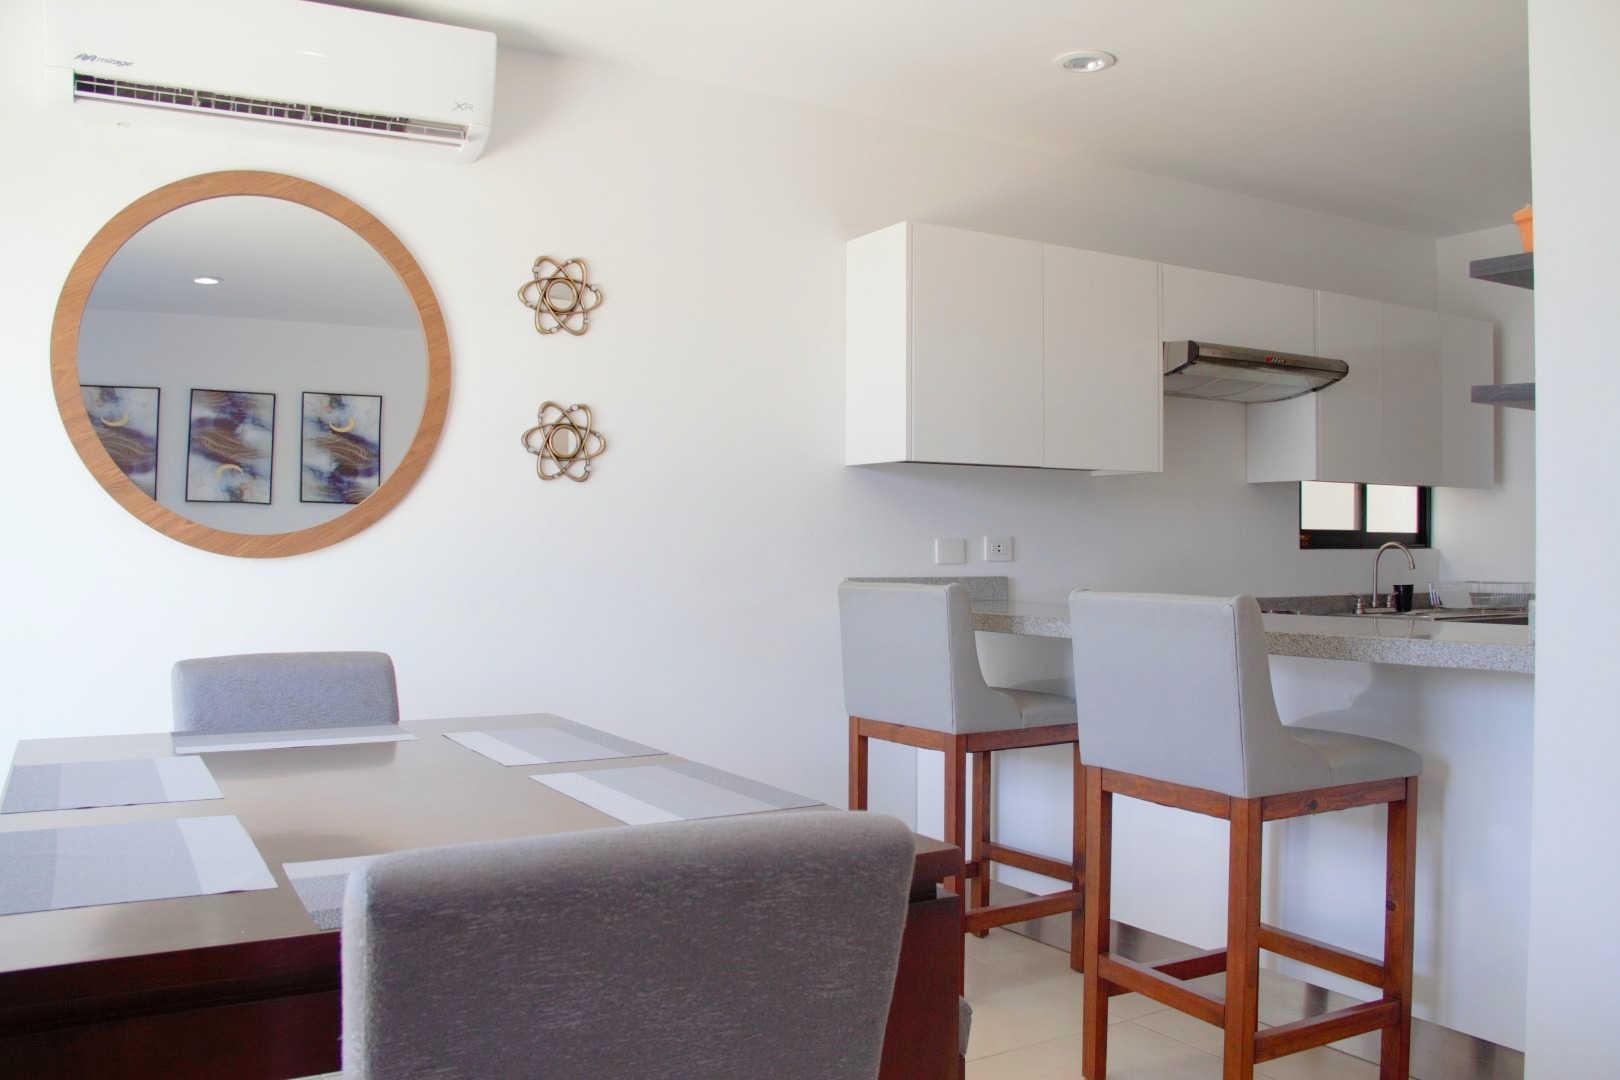 Kitchen with breakfast bar and seating for 2 people.